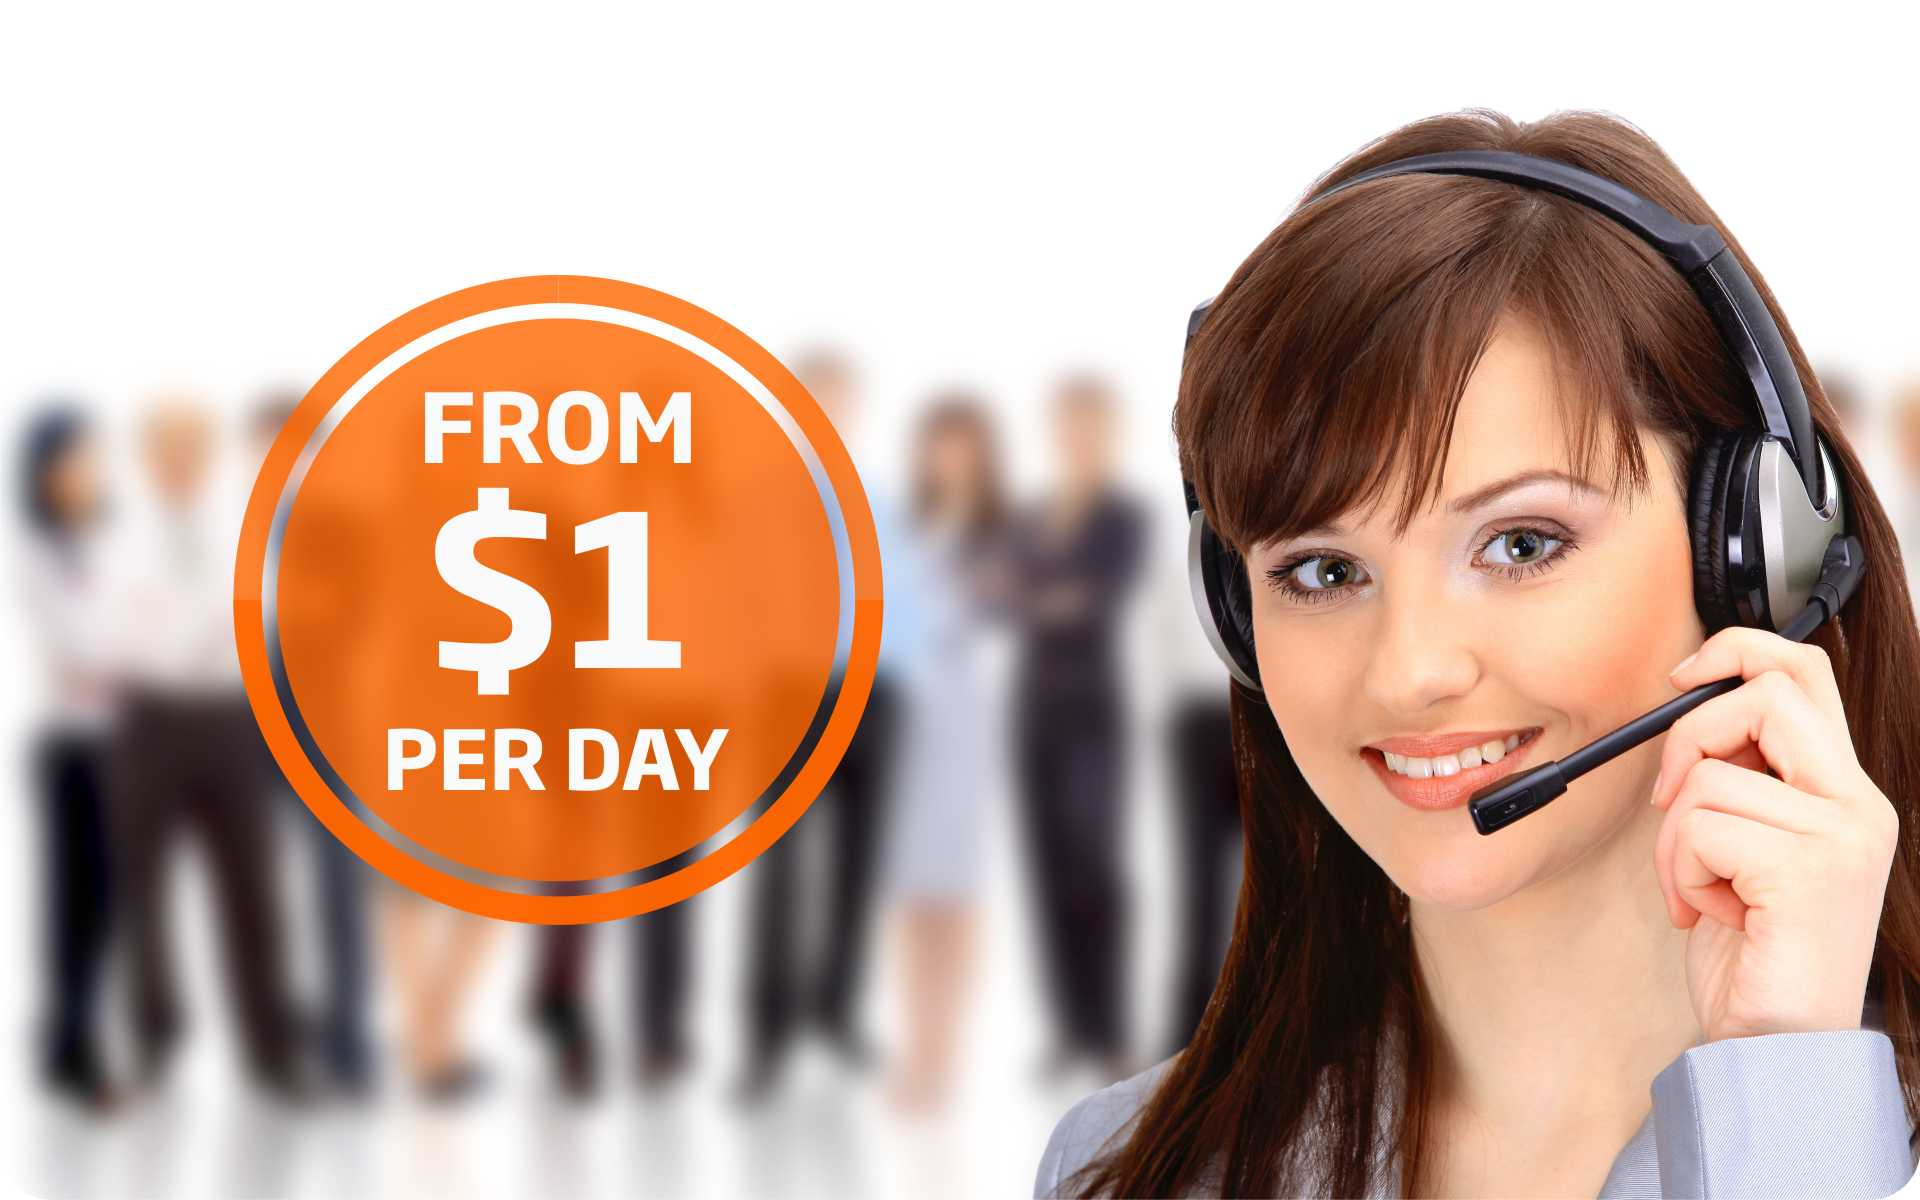 telephone-answering-services-live-phone-answering-service-australia-B247-140418.jpg